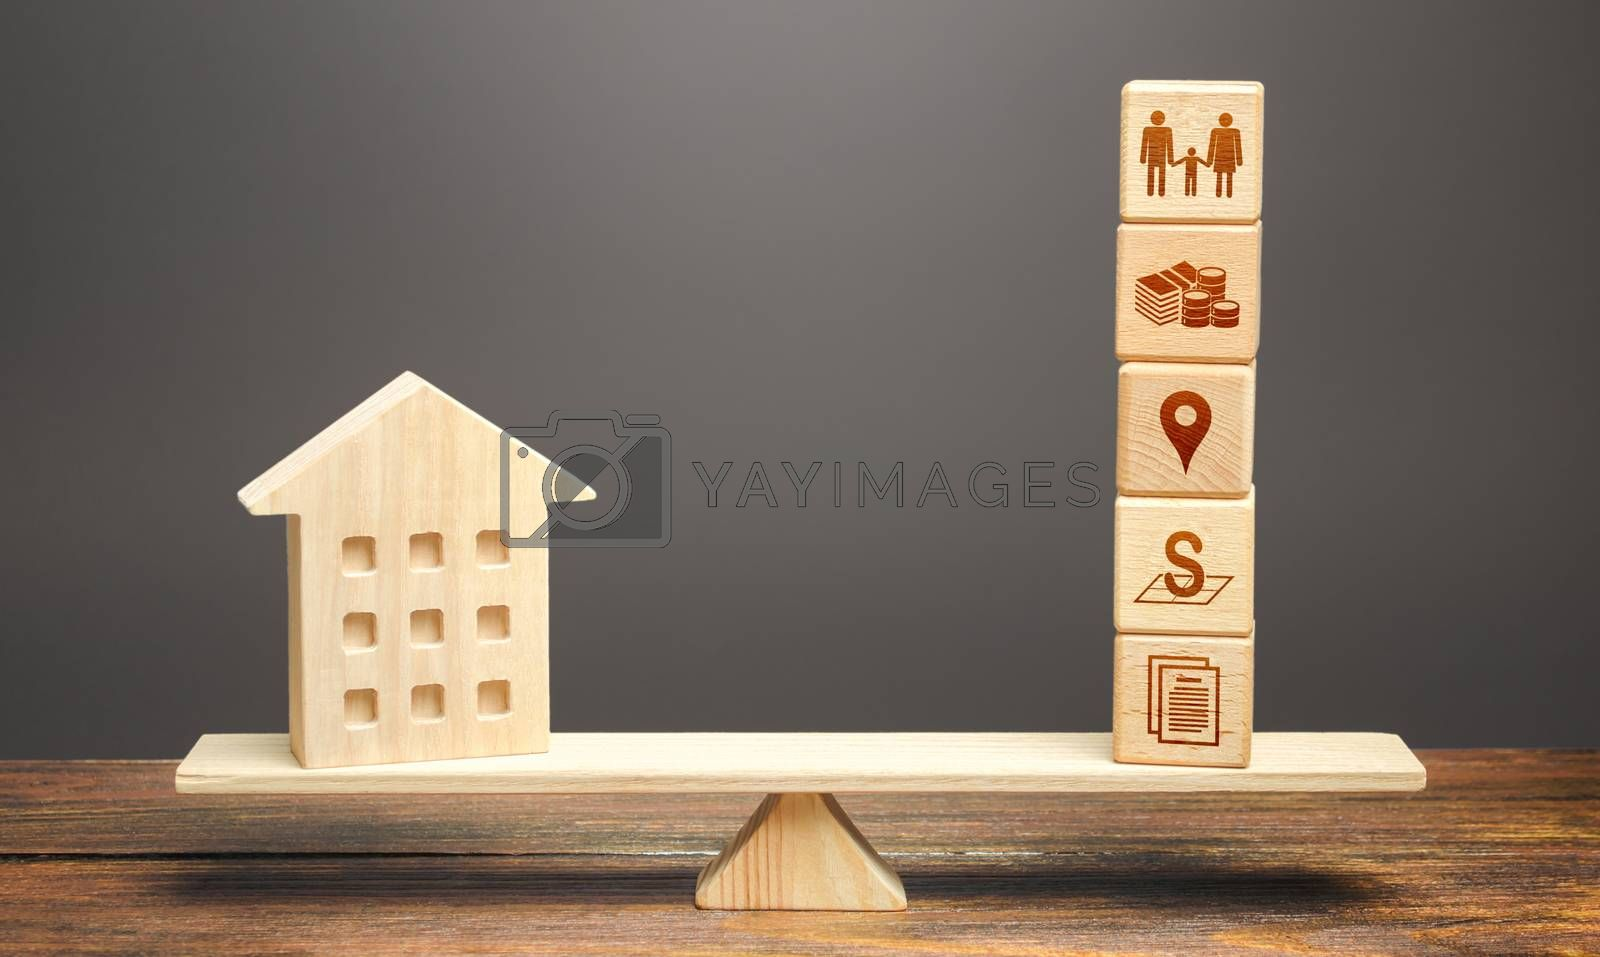 House and blocks of real estate parameters on scales. Searching for a suitable house by criteria. Realtor services. Price, area, location and infrastructure. The best home choice on the market.